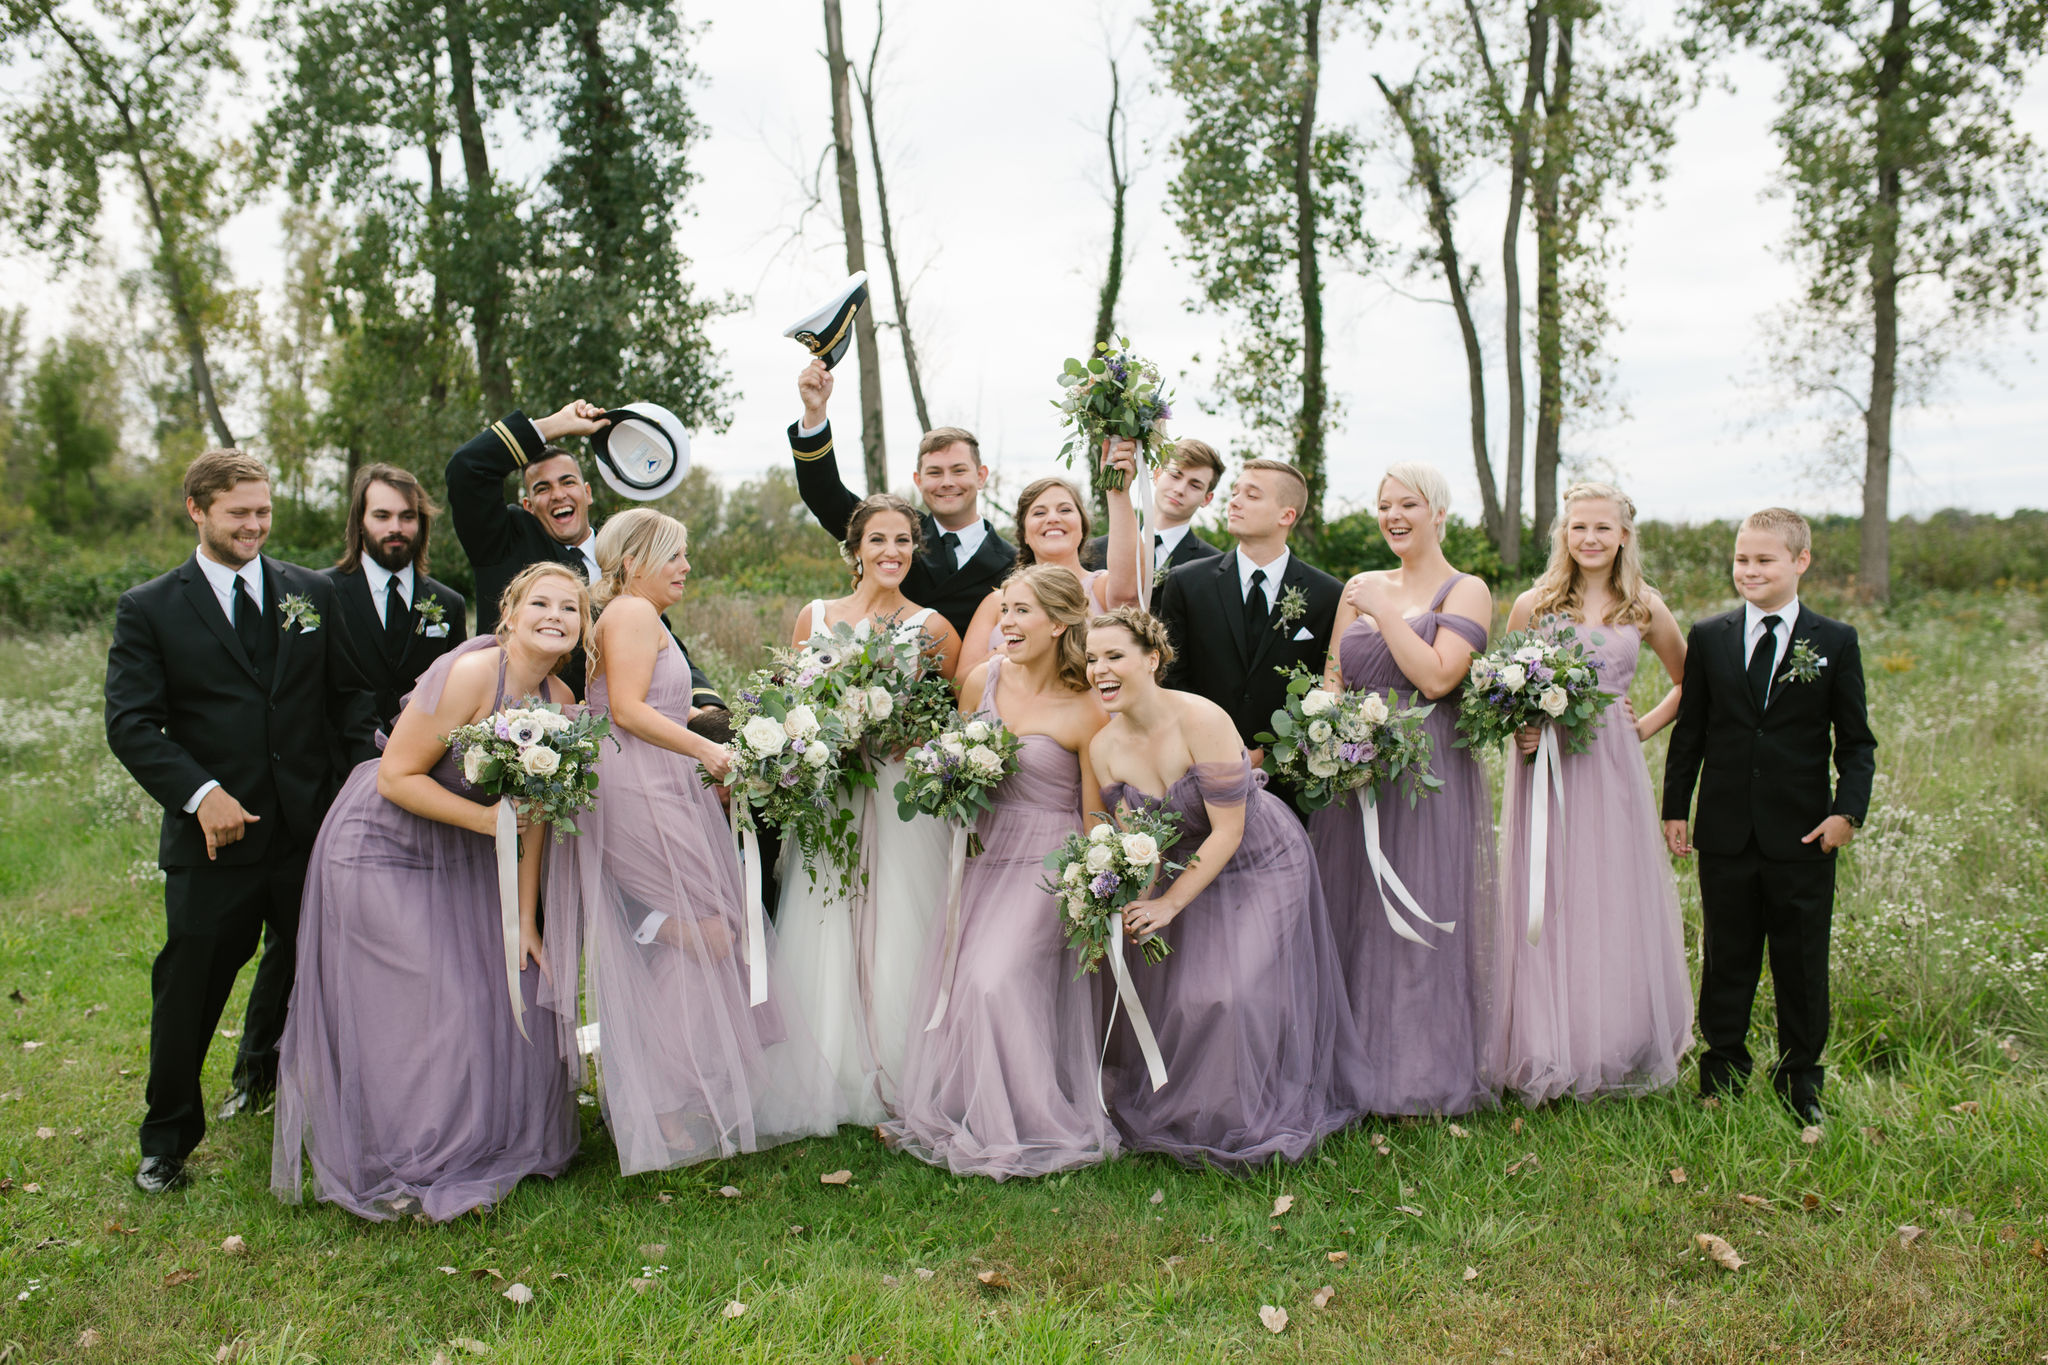 Brueckmann-KruippWedding(Final)-235.jpg